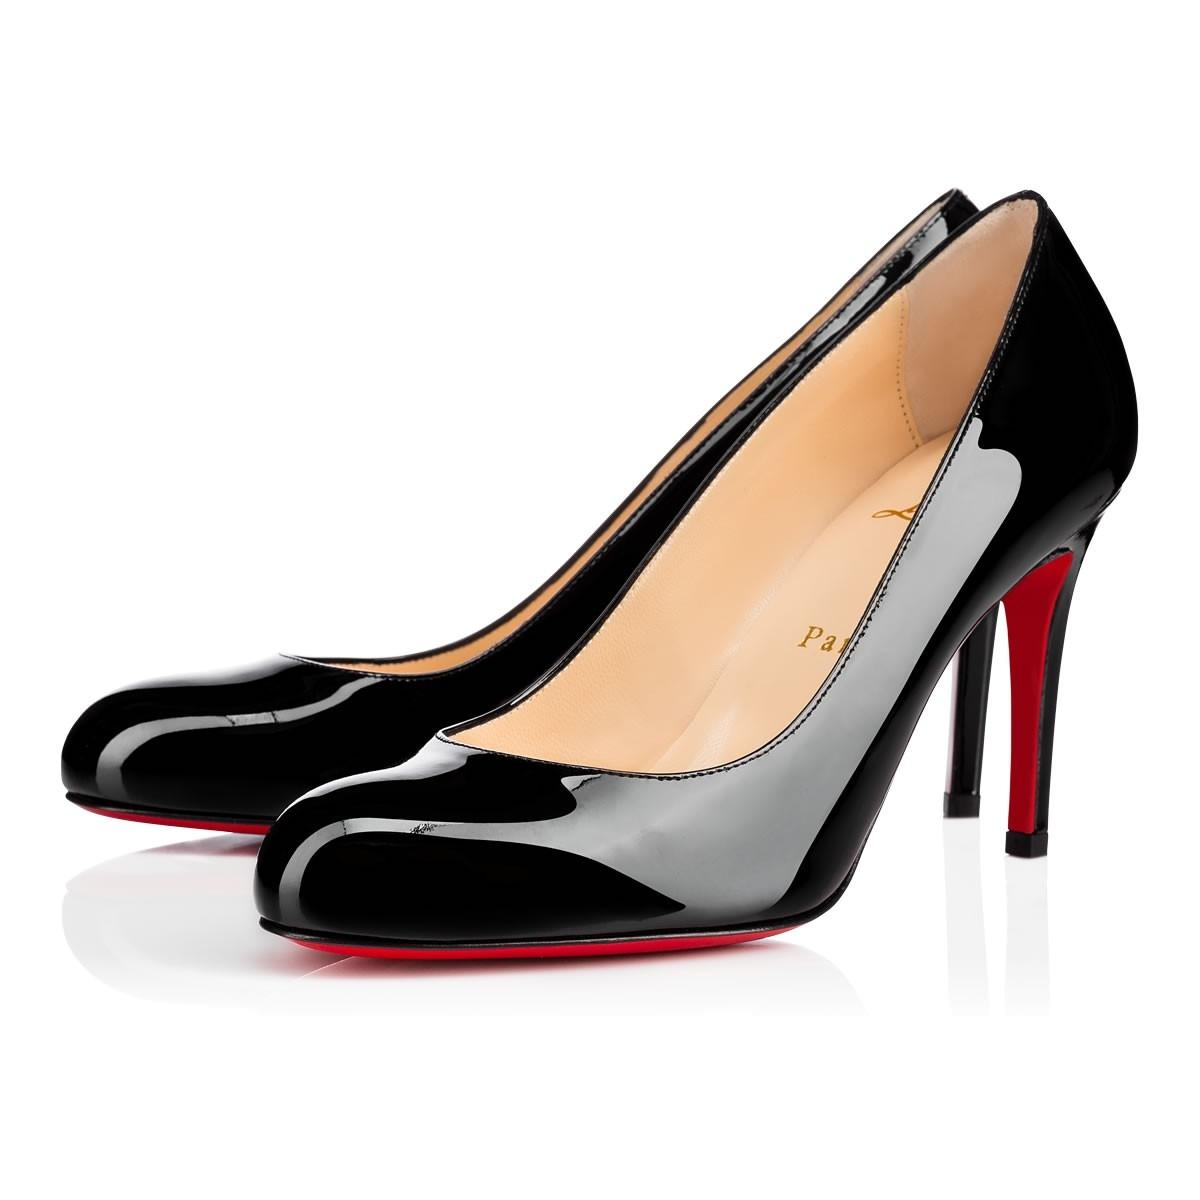 Christian Louboutin Black Classic Simple 85mm Patent Leather Round Toe Heels Pumps Size EU 39.5 (Approx. US 9.5) Regular (M, B)